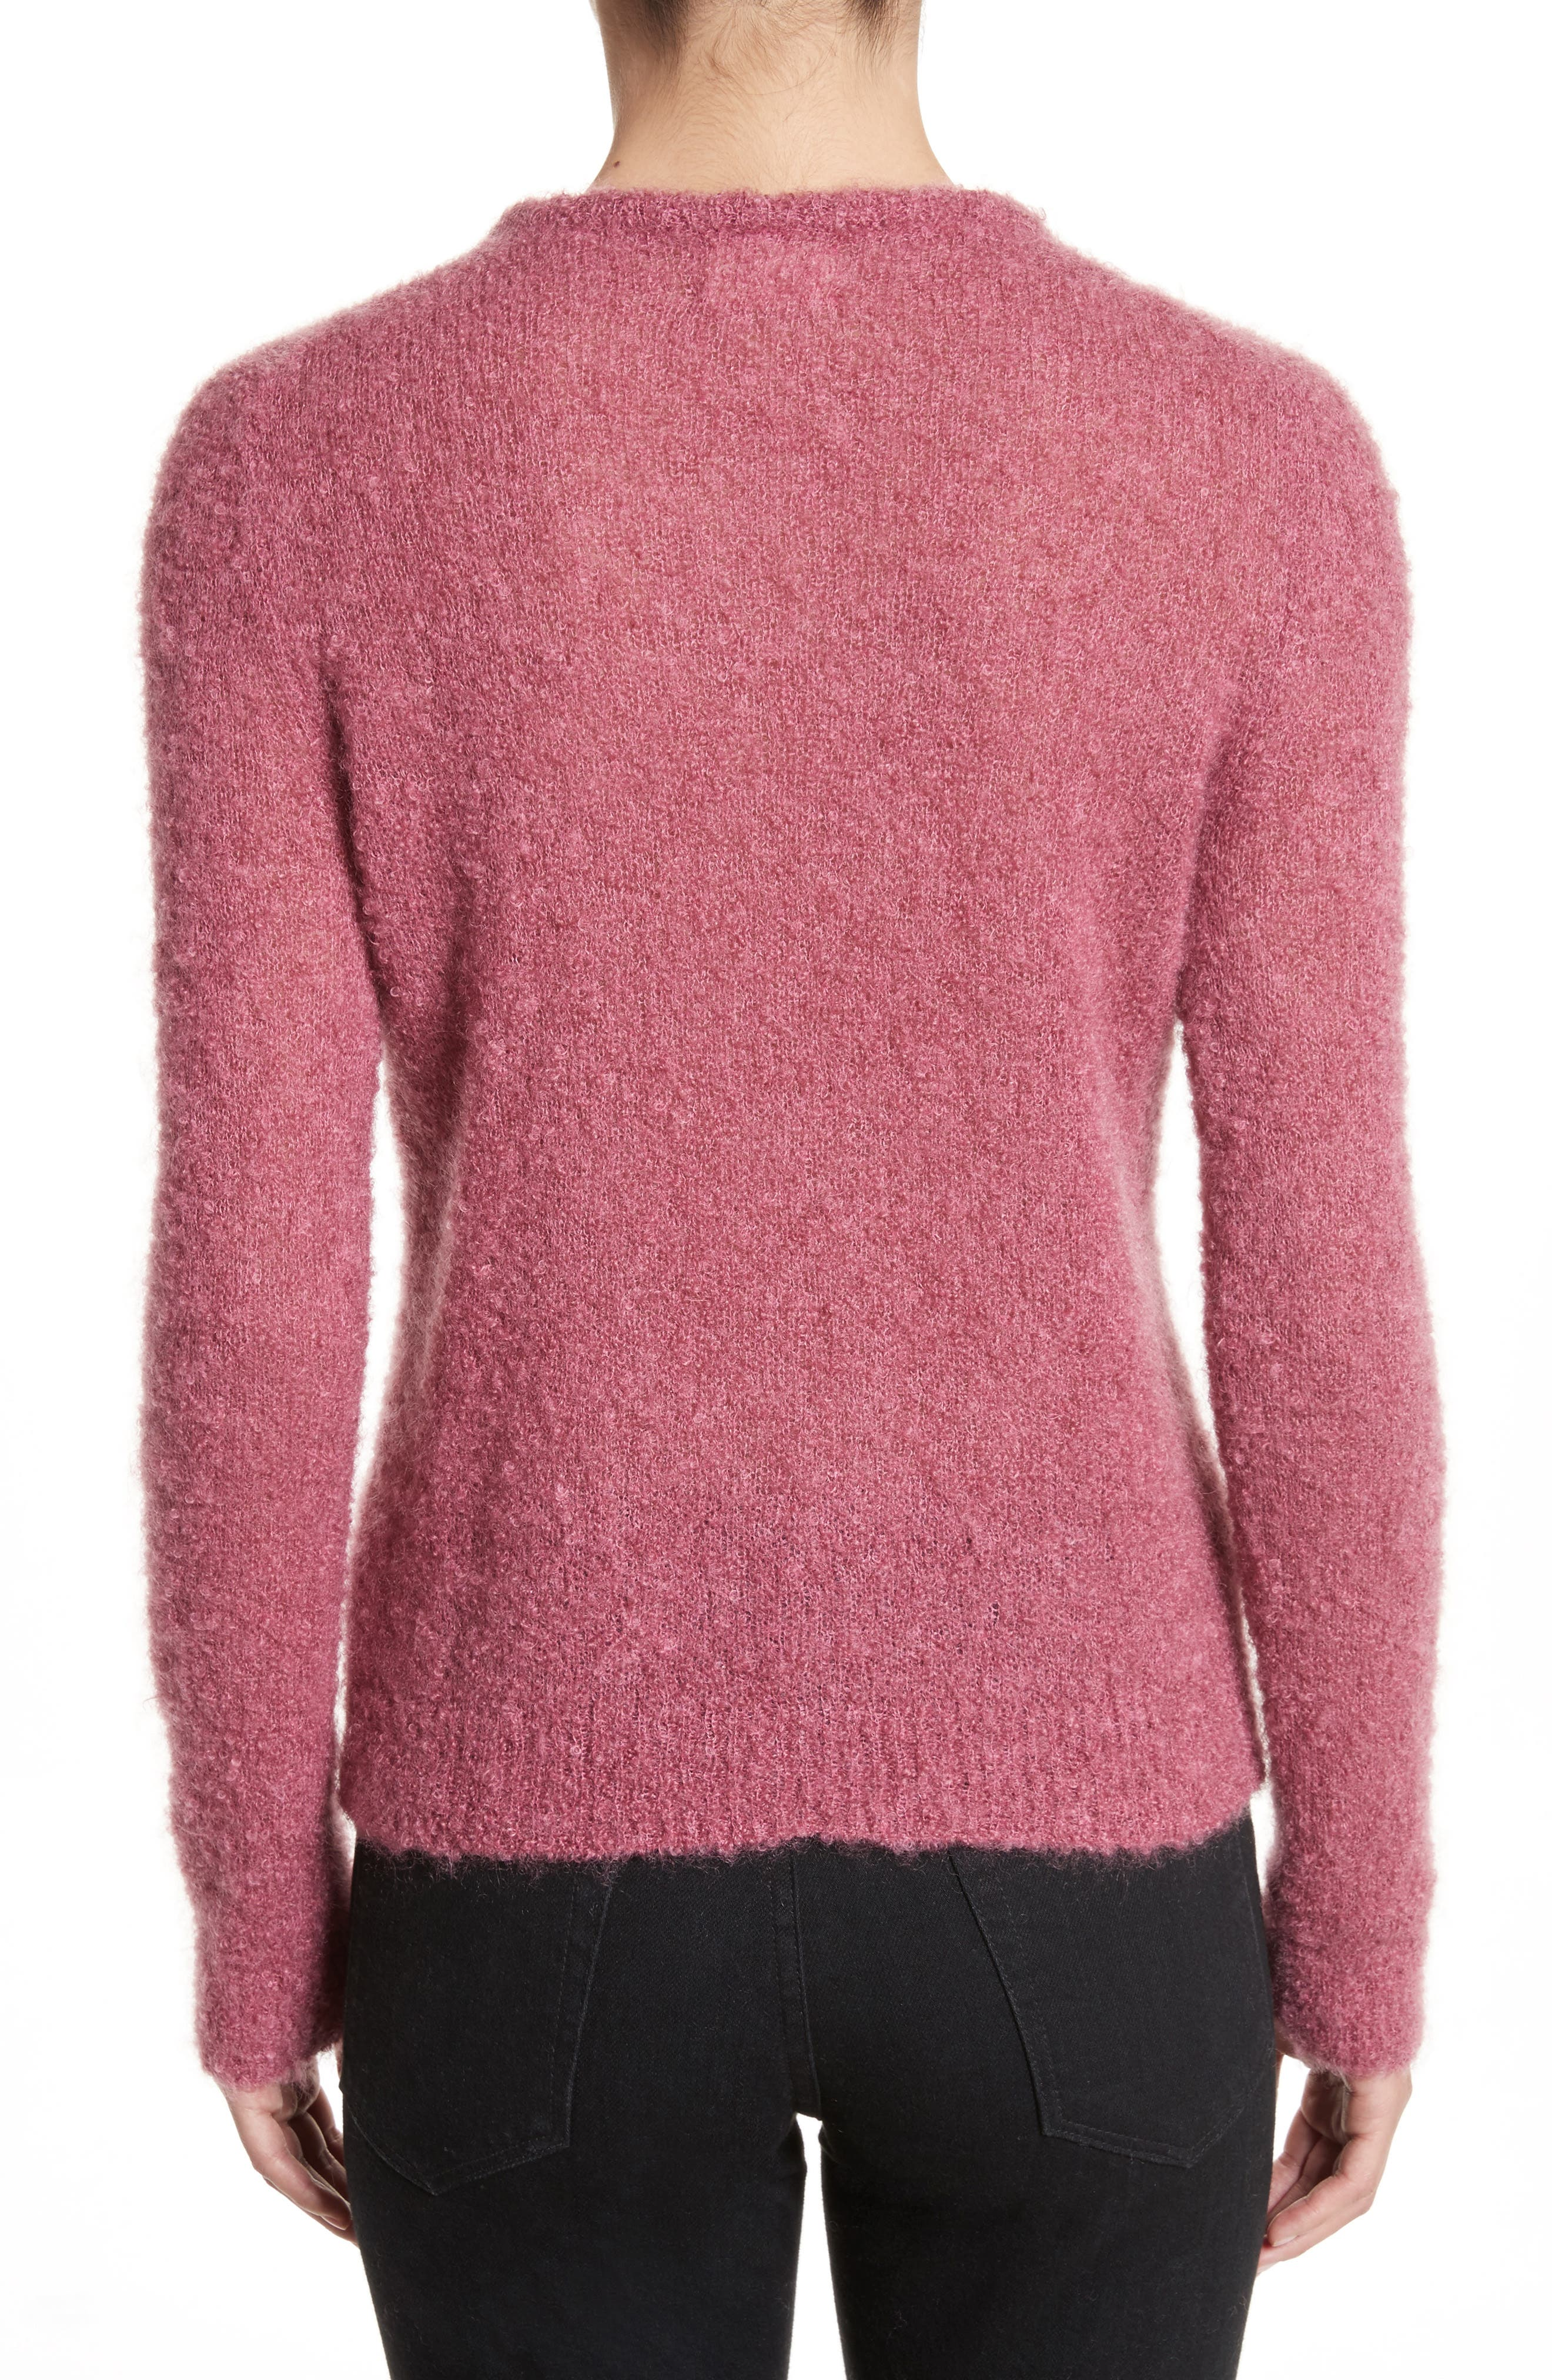 Tatum Mohair & Silk Sweater,                             Alternate thumbnail 2, color,                             Ruby Pink